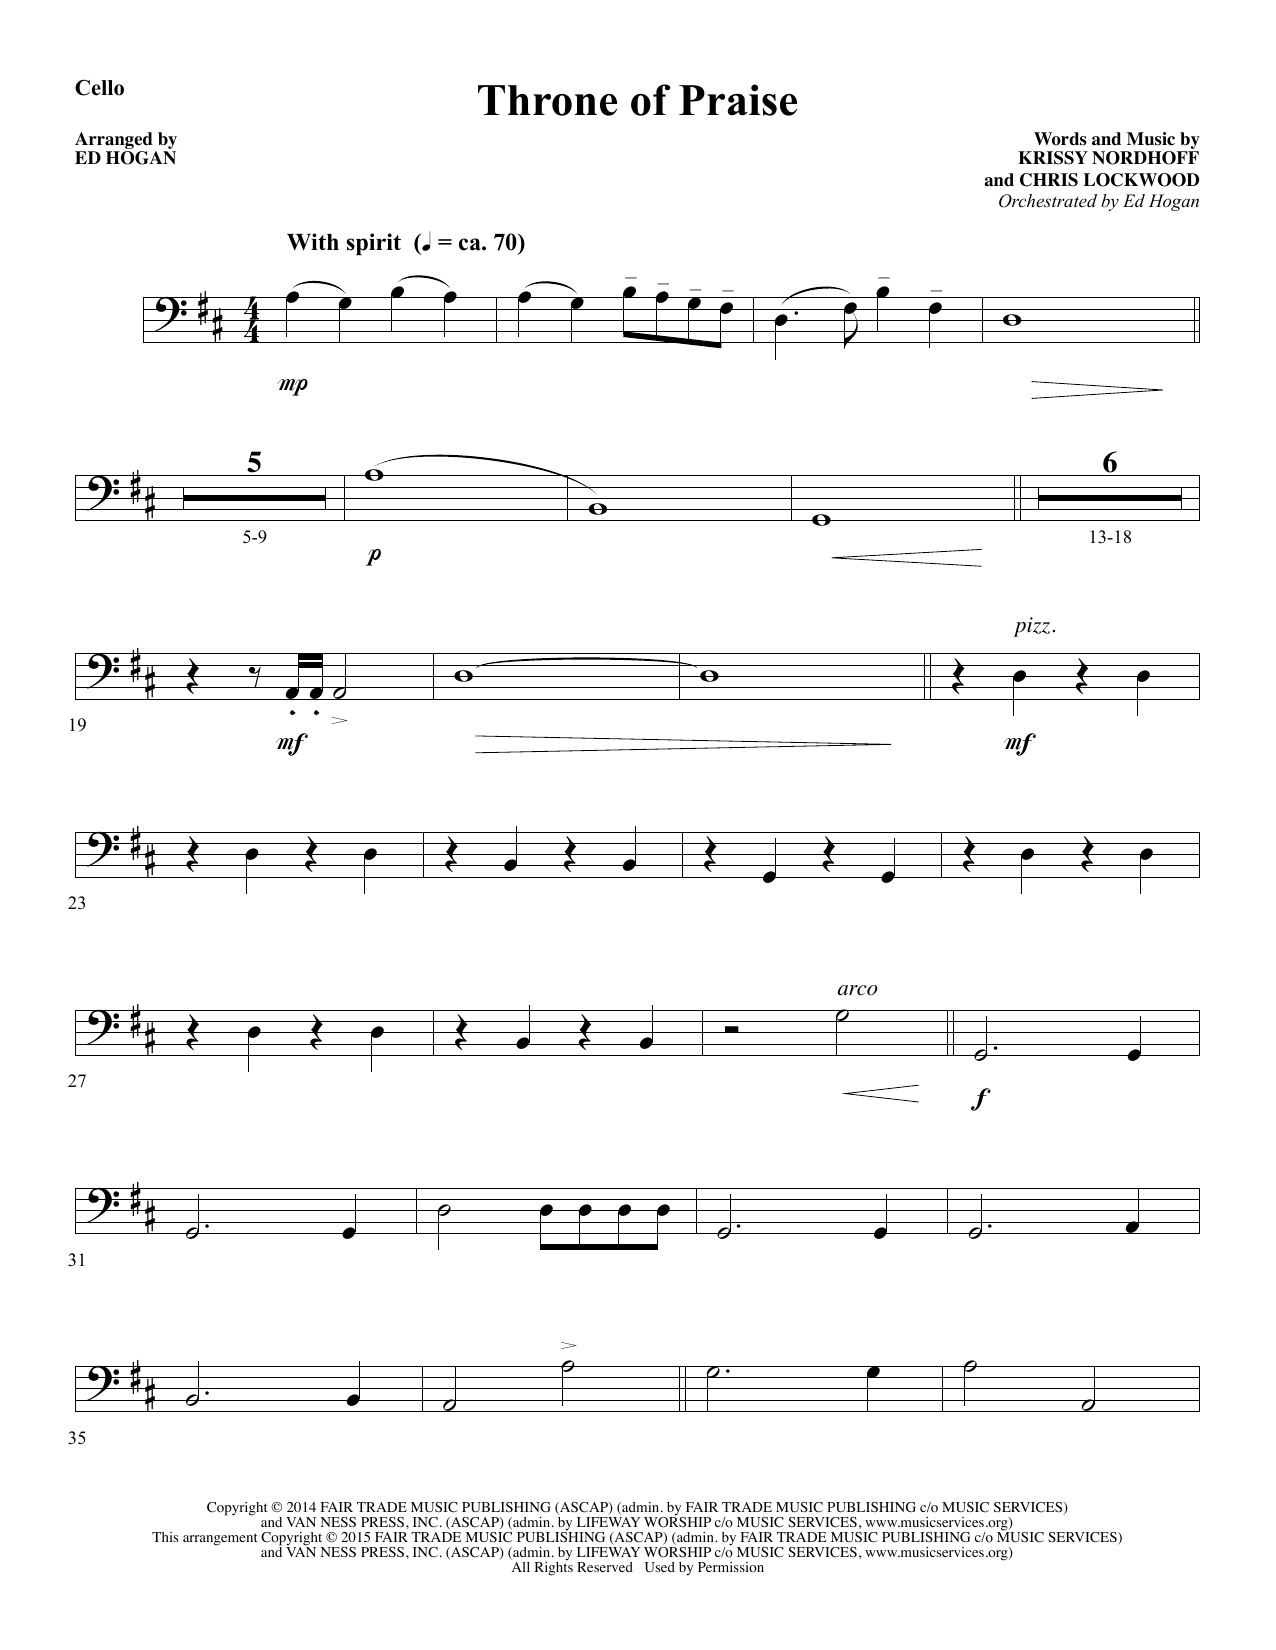 Throne of Praise - Cello Sheet Music